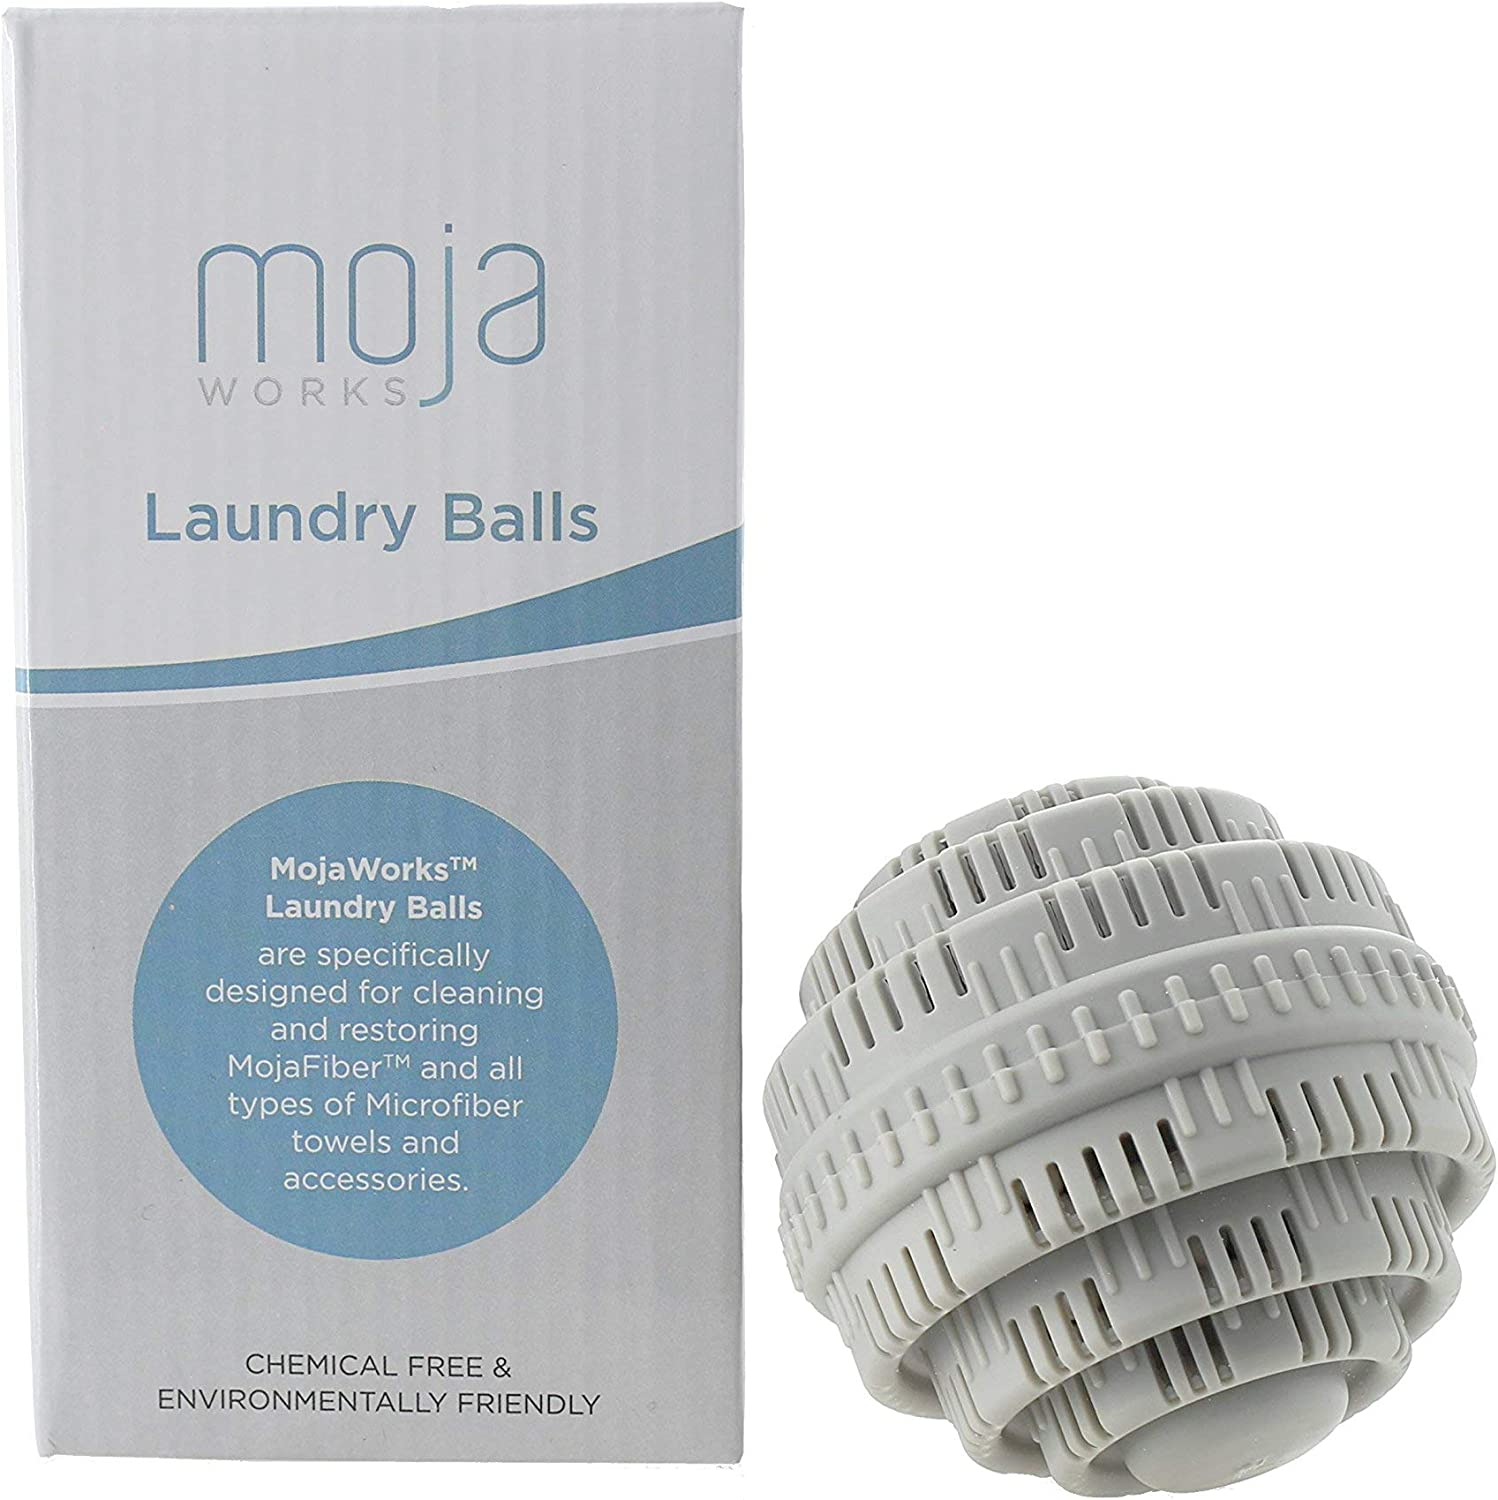 MojaFiber Microfiber Laundry Washing Balls - Detergent Chemical and Scent Free Eco-Friendly Natural Well Suited to Restore Microfiber and Any Fabric Good for up to 1000 Loads of Laundry 2-Pieces Set